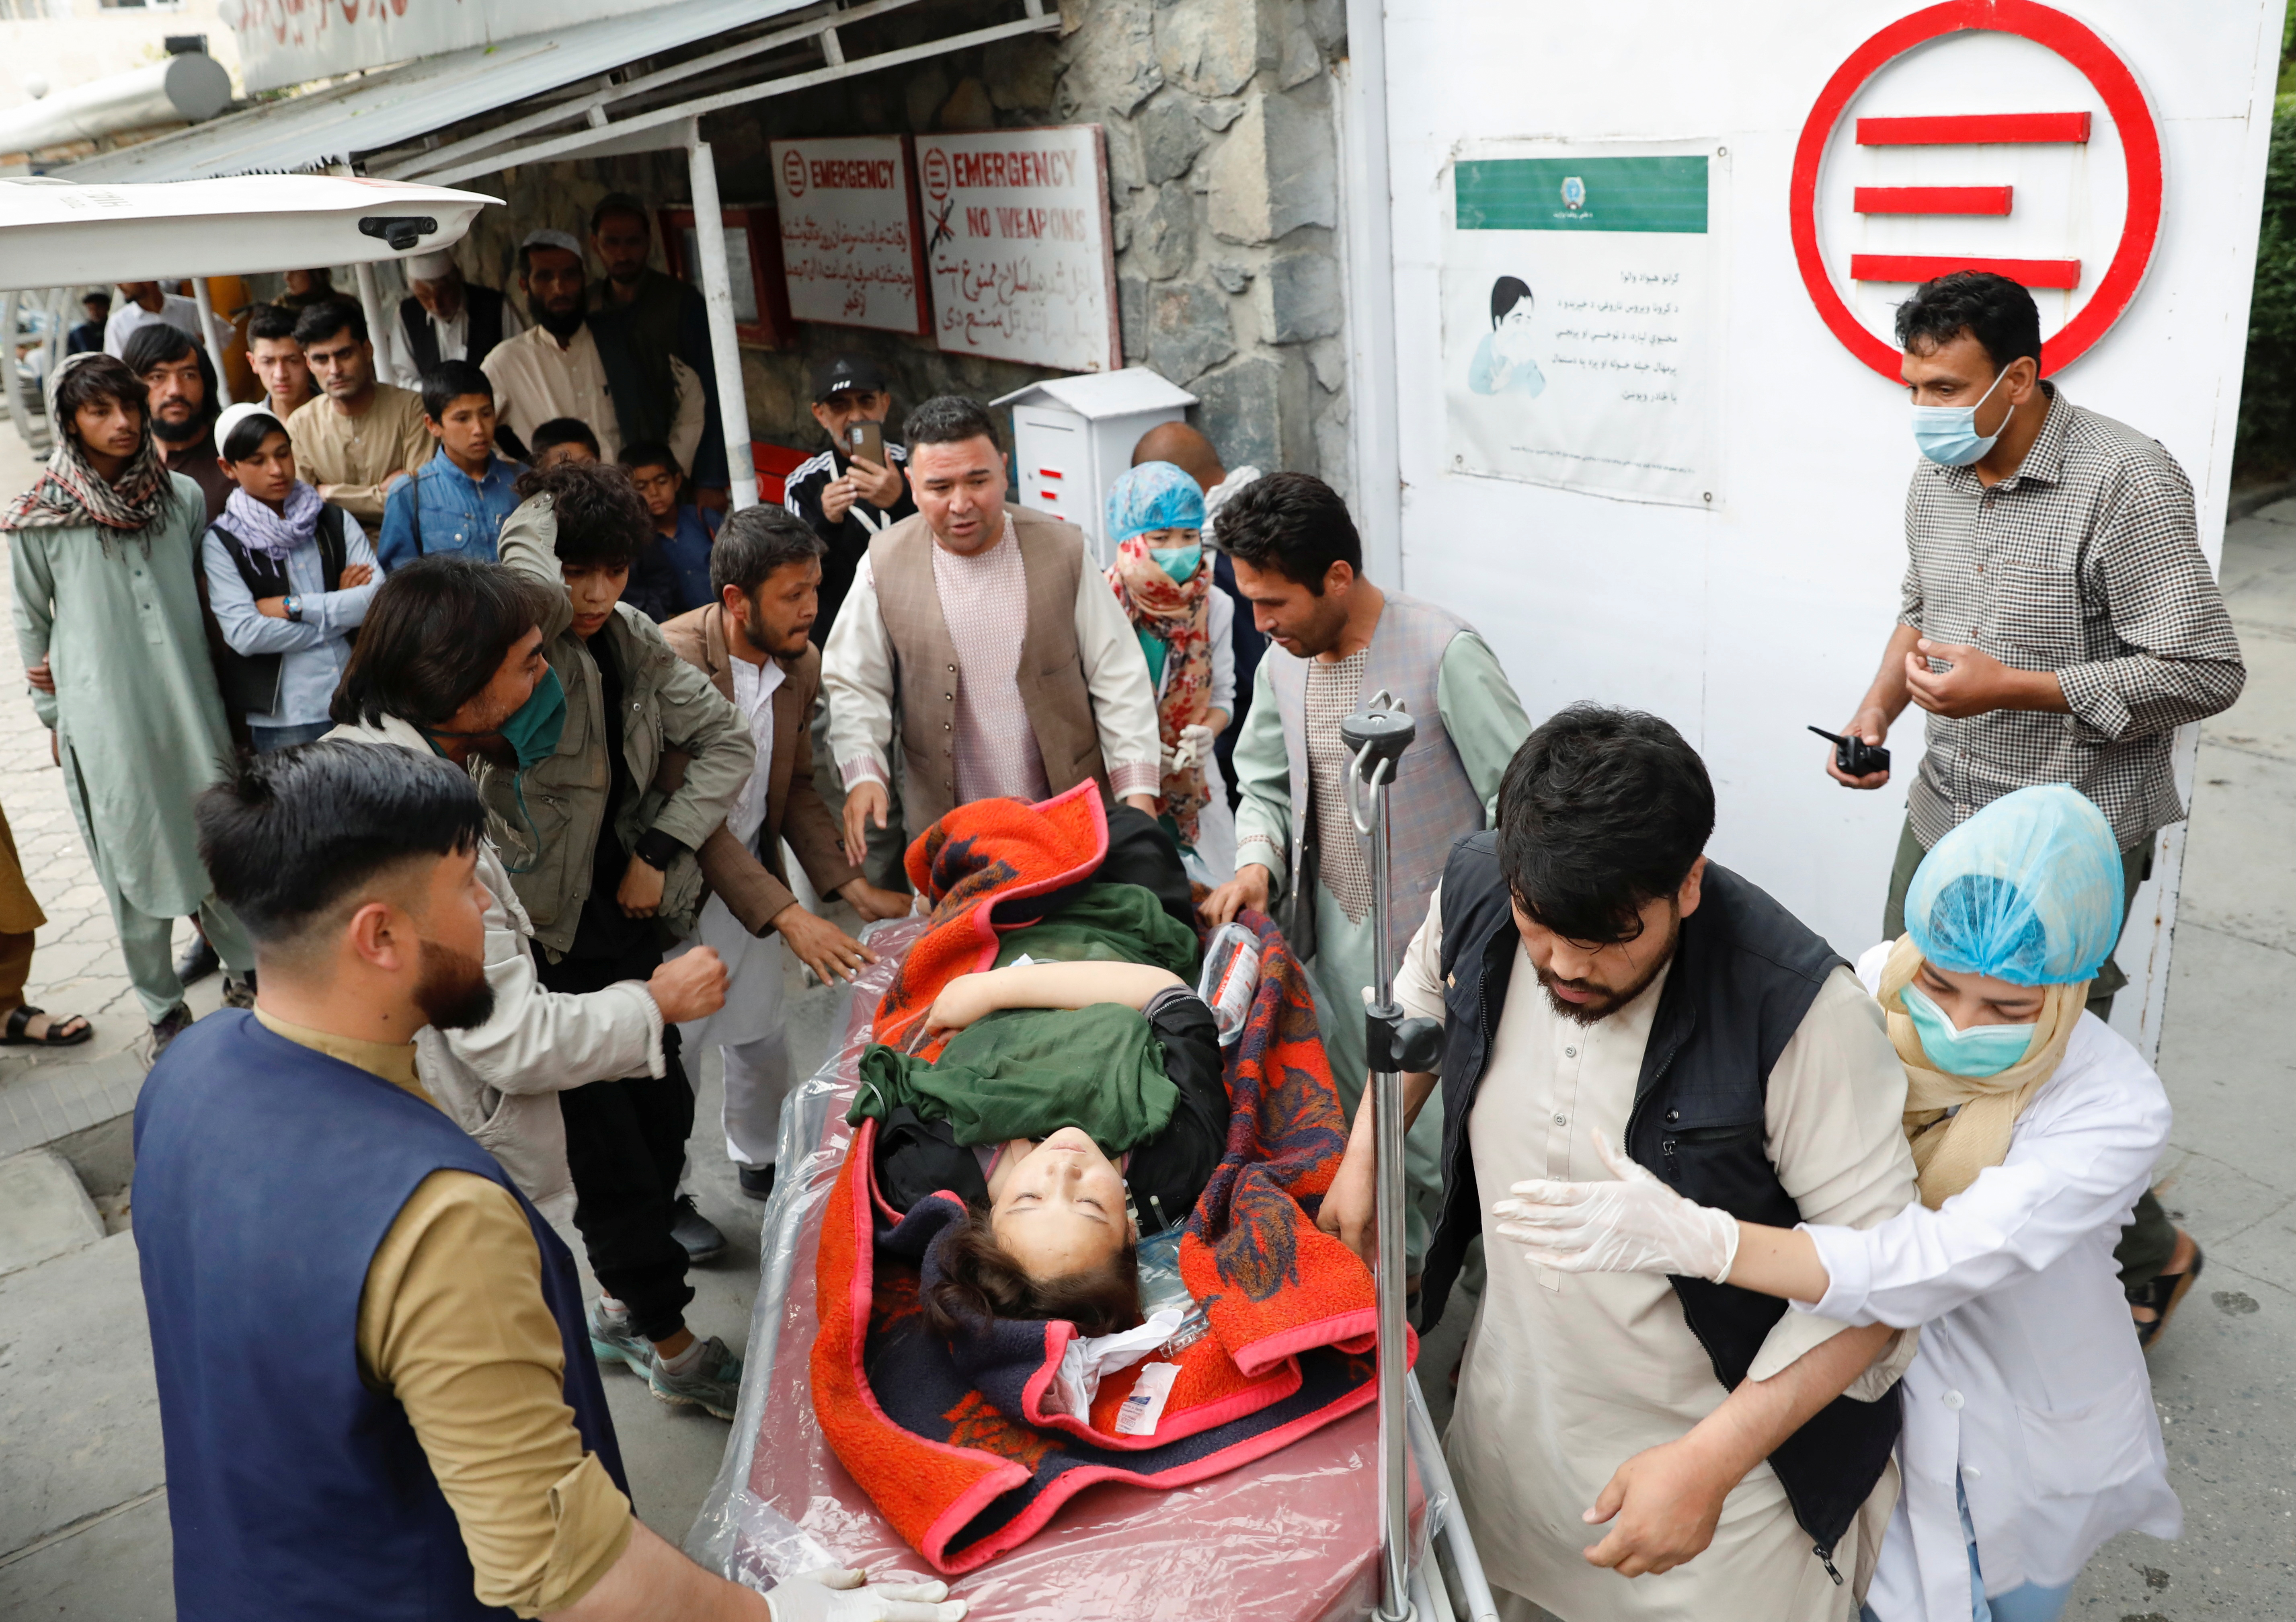 An injured woman is transported  to a hospital after a blast in Kabul, Afghanistan May 8, 2021. REUTERS/Mohammad Ismail